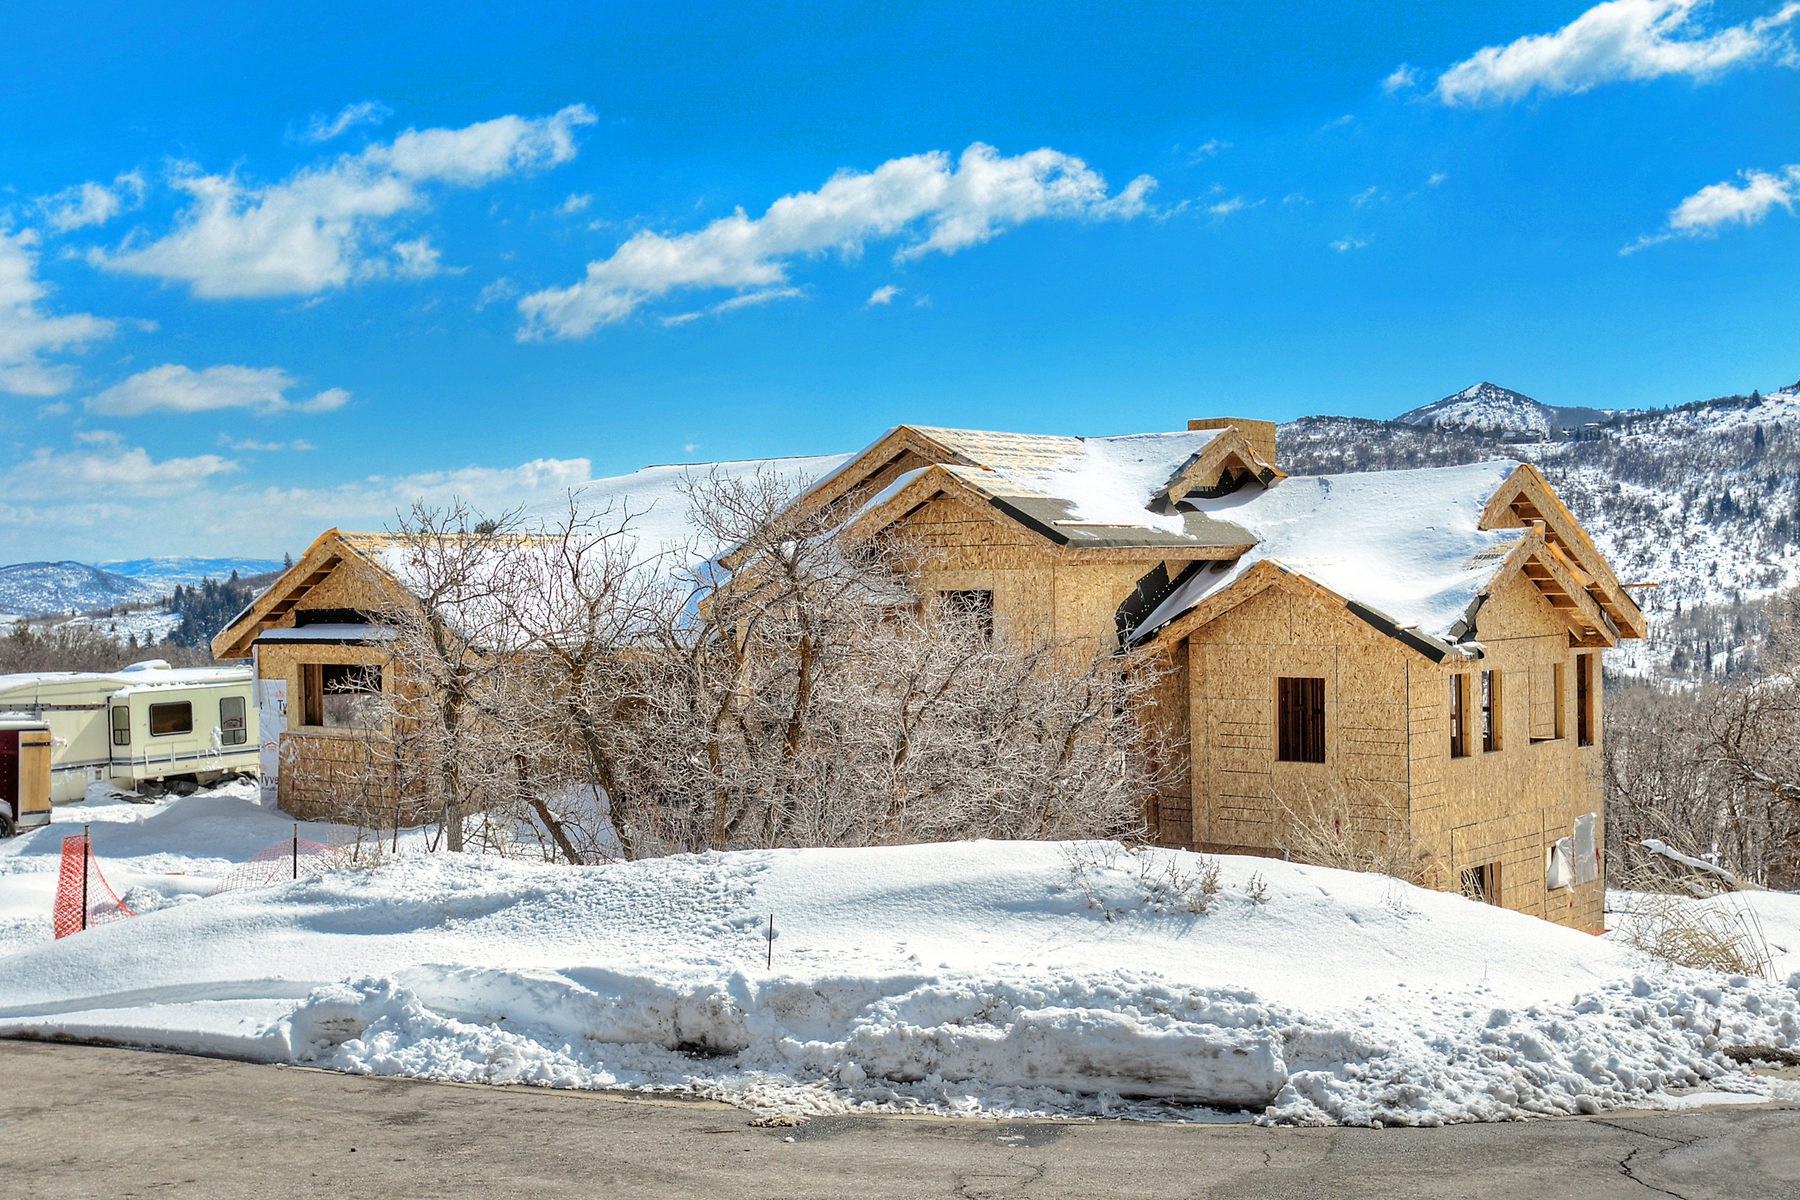 Single Family Home for Sale at For the Ongoing Collection of Life 8830 Parleys Ln Lot 29 Park City, Utah 84098 United States